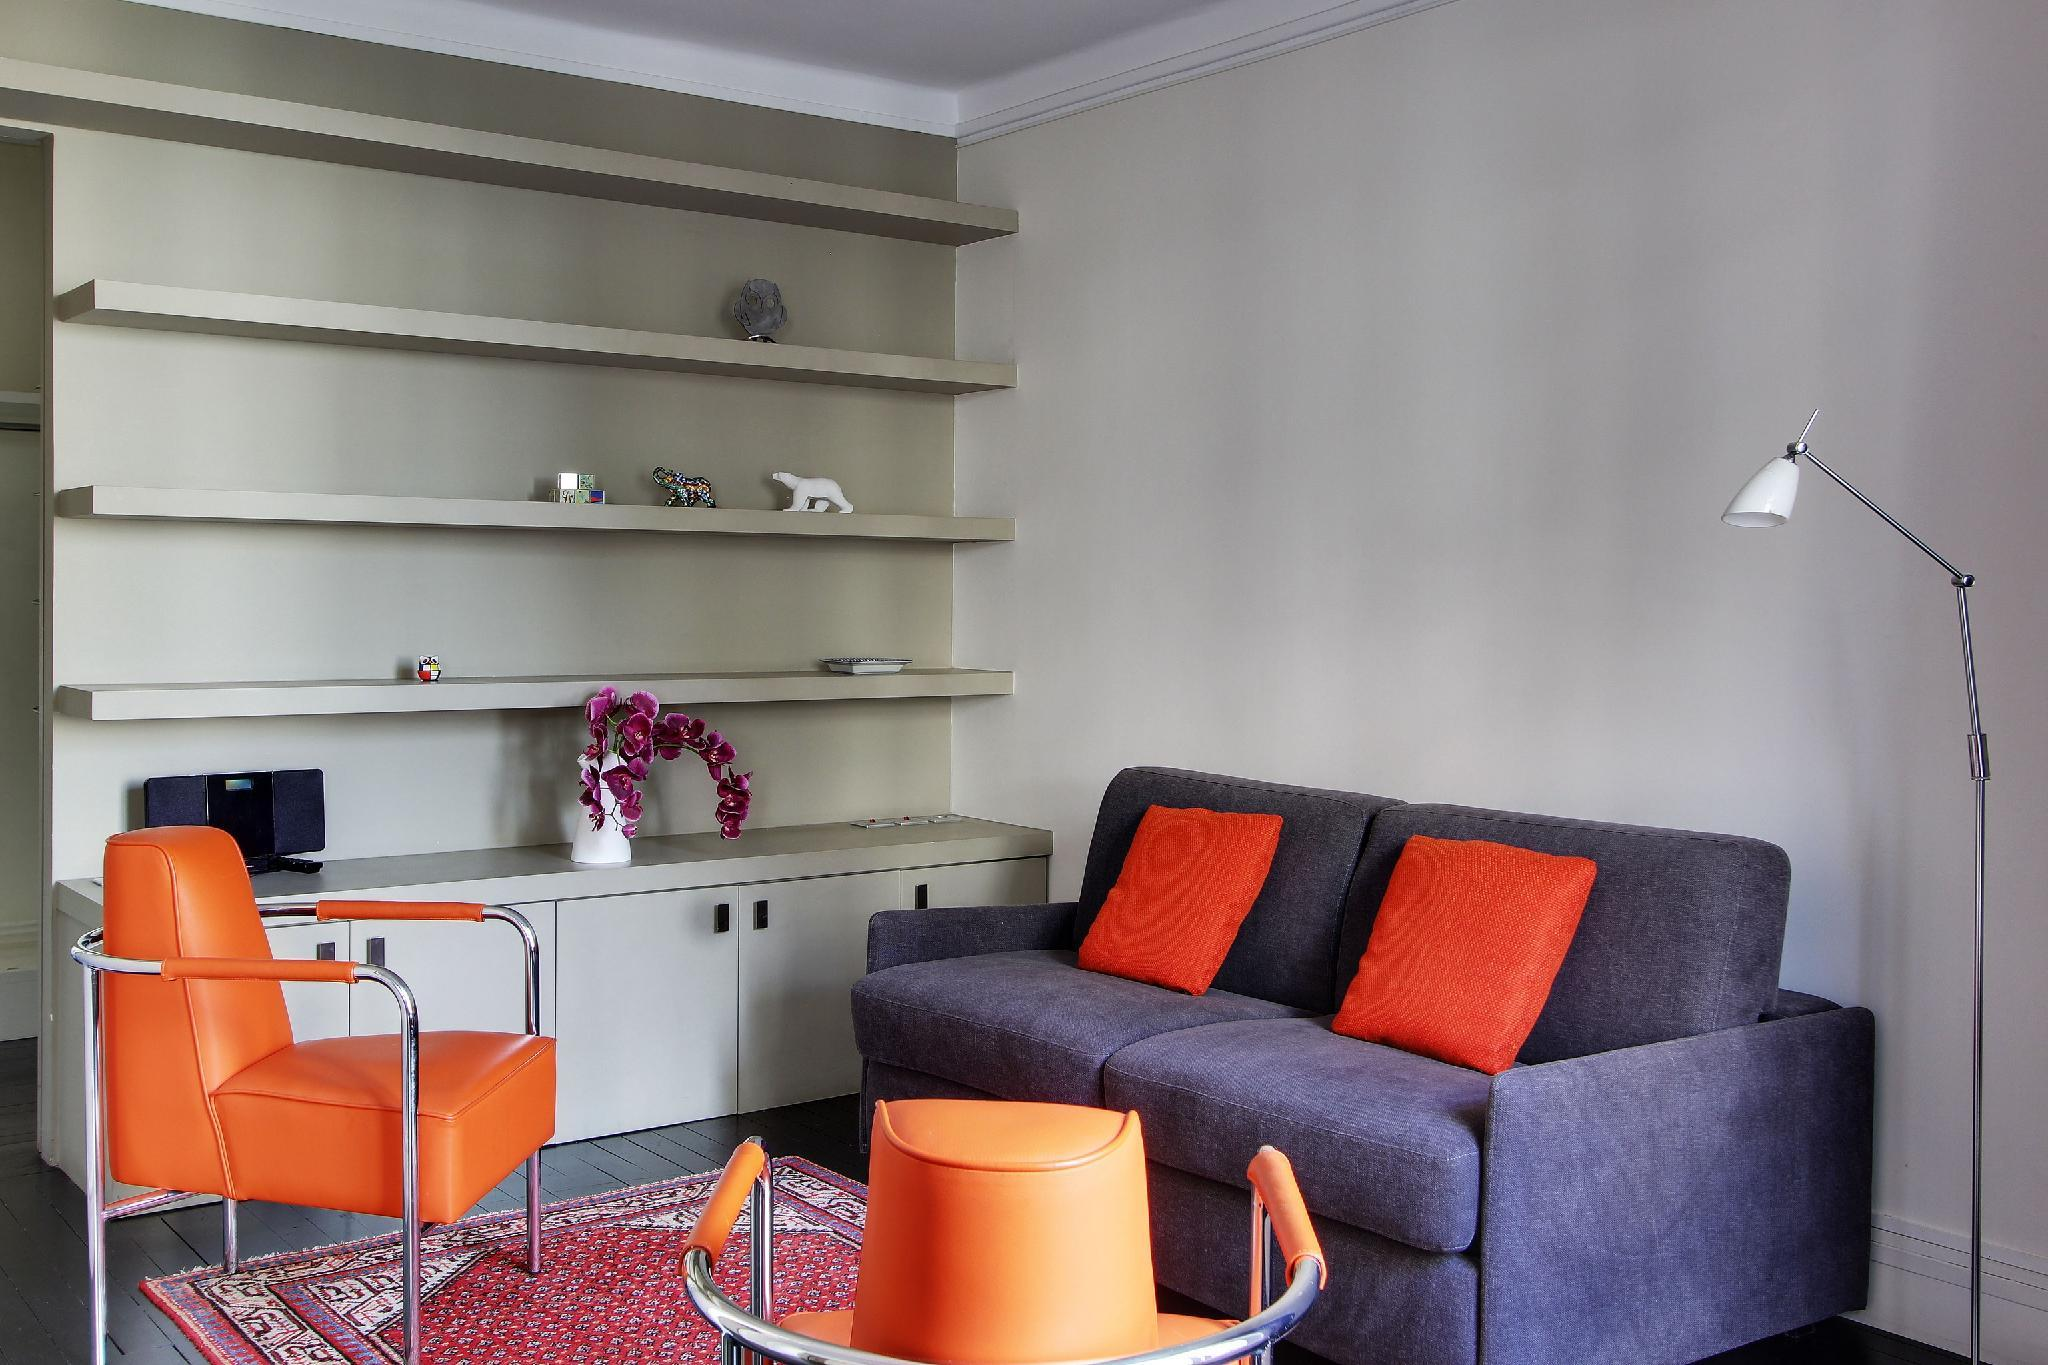 116131 - Lovely apartment for 4 people near the Trocadéro